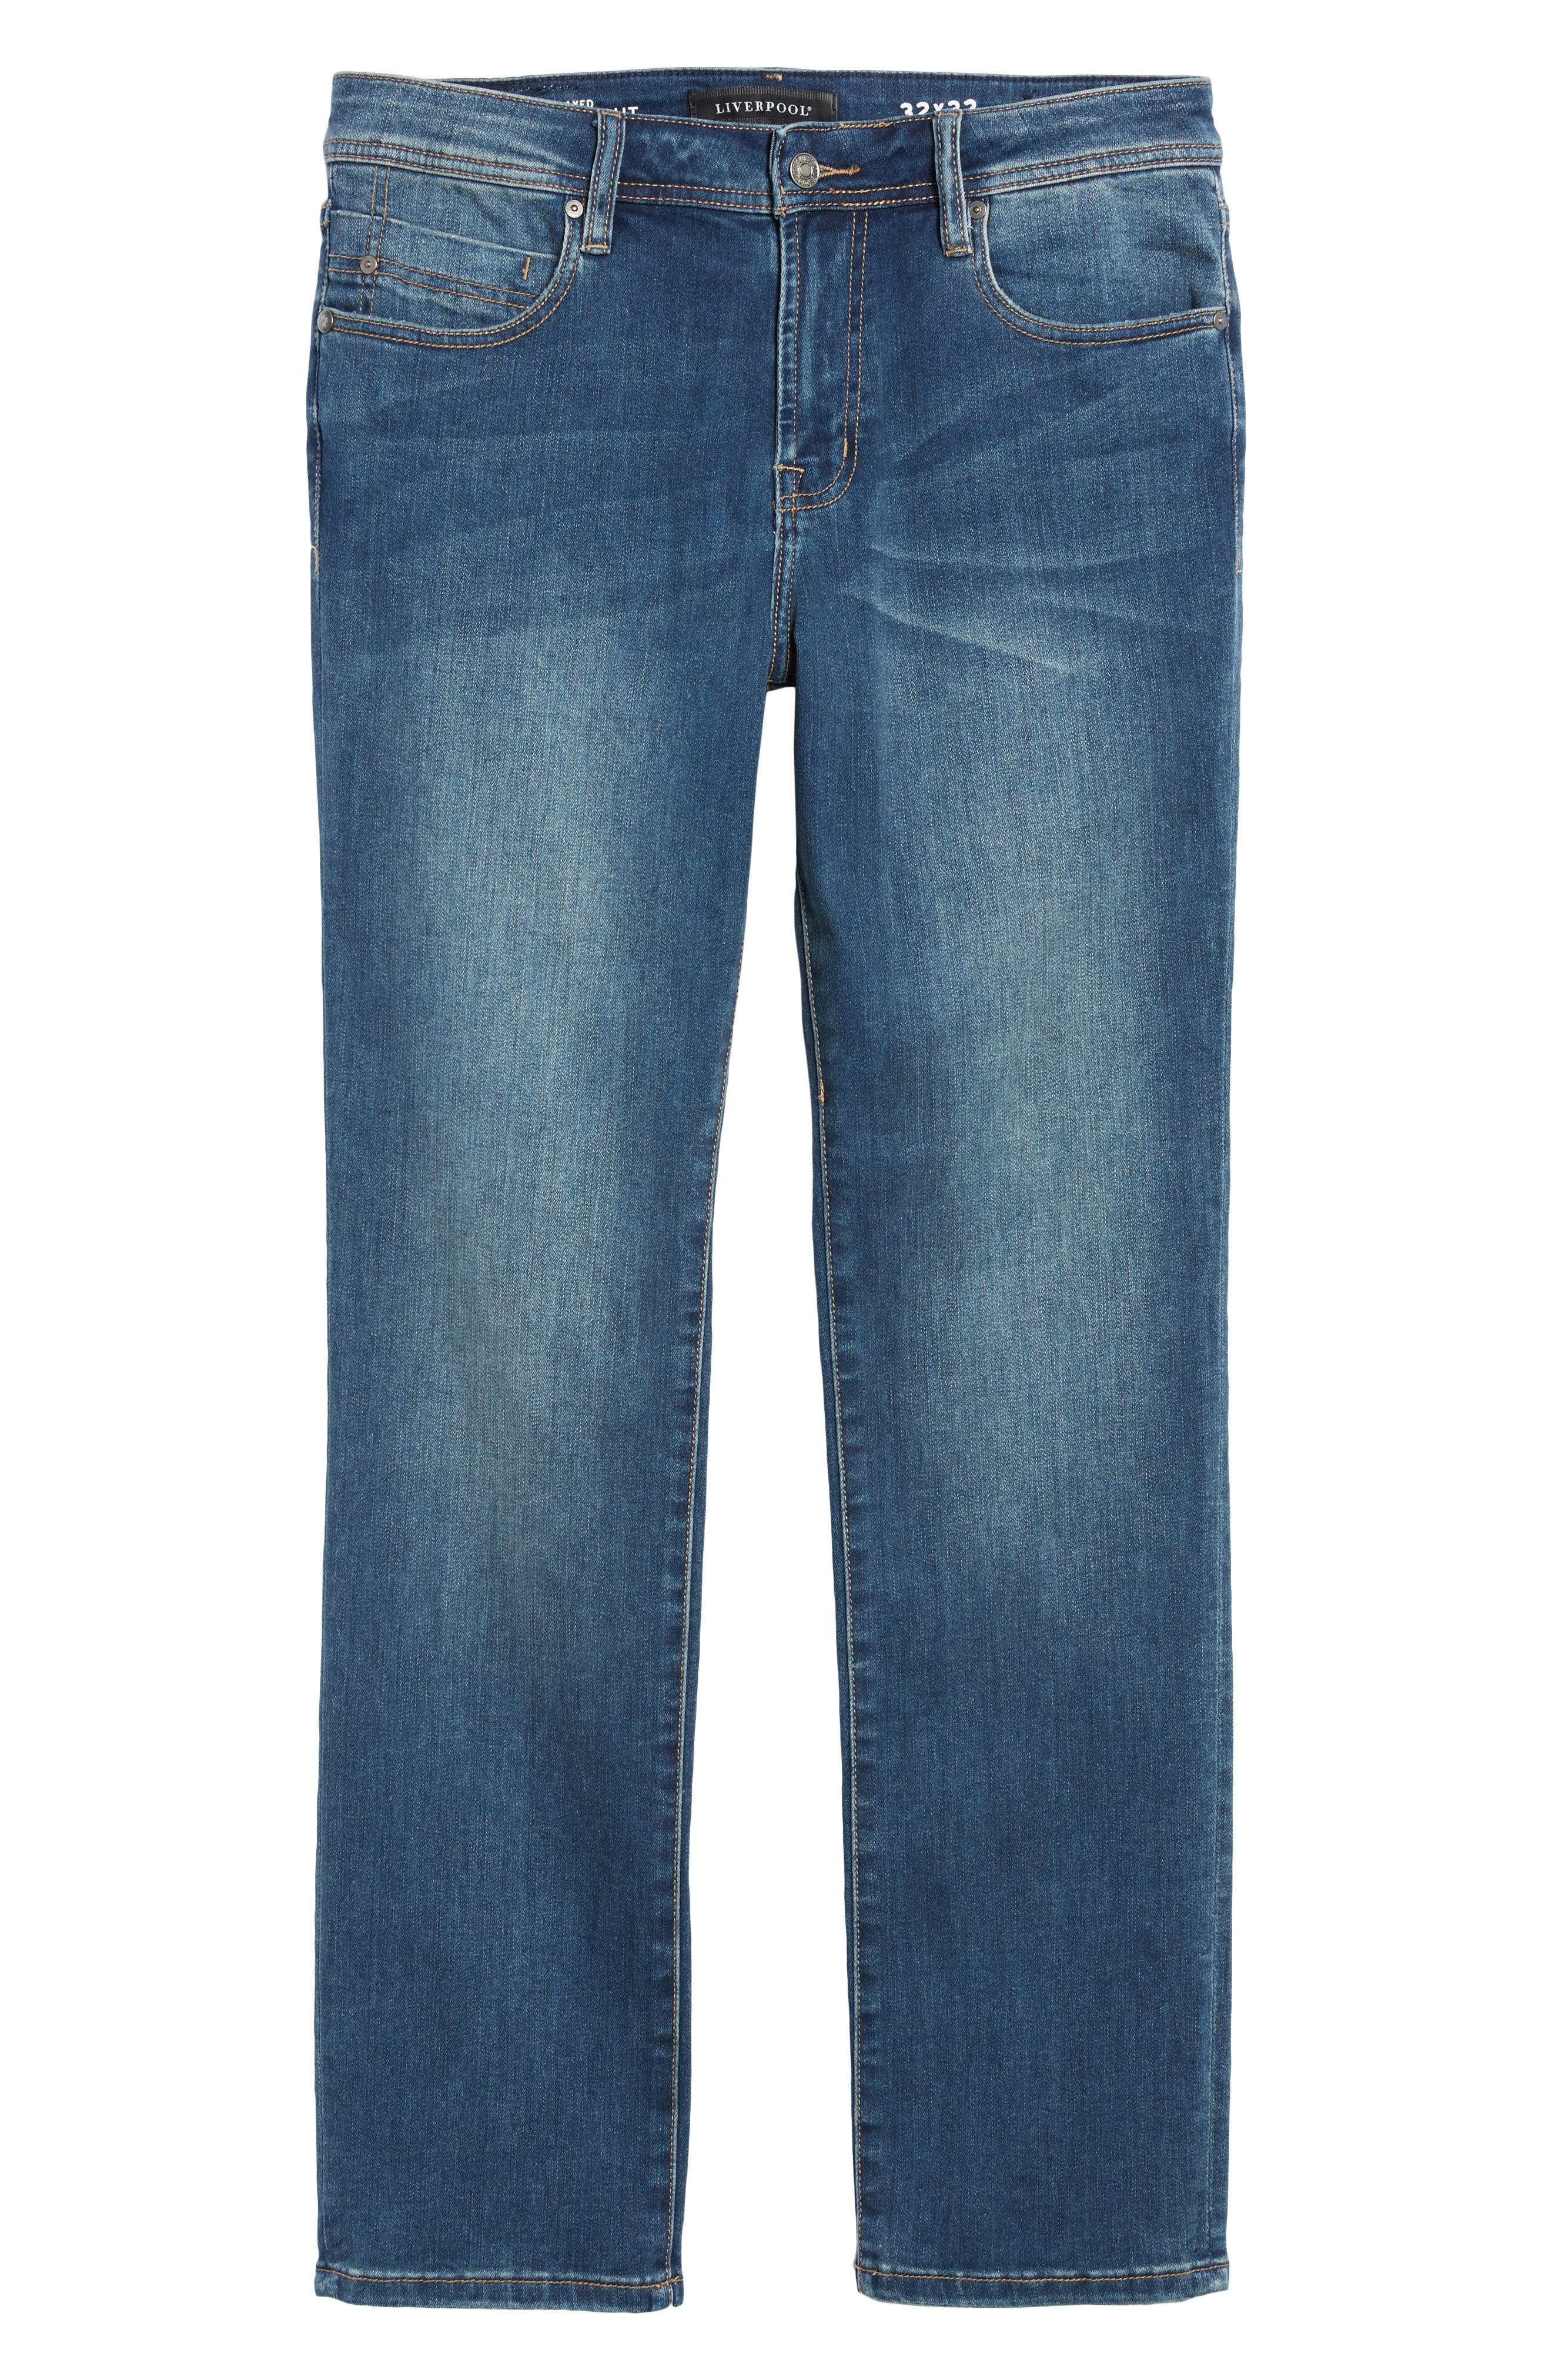 Jeans Co. Regent Relaxed Fit Jeans,                             Alternate thumbnail 6, color,                             CHATSWORTH